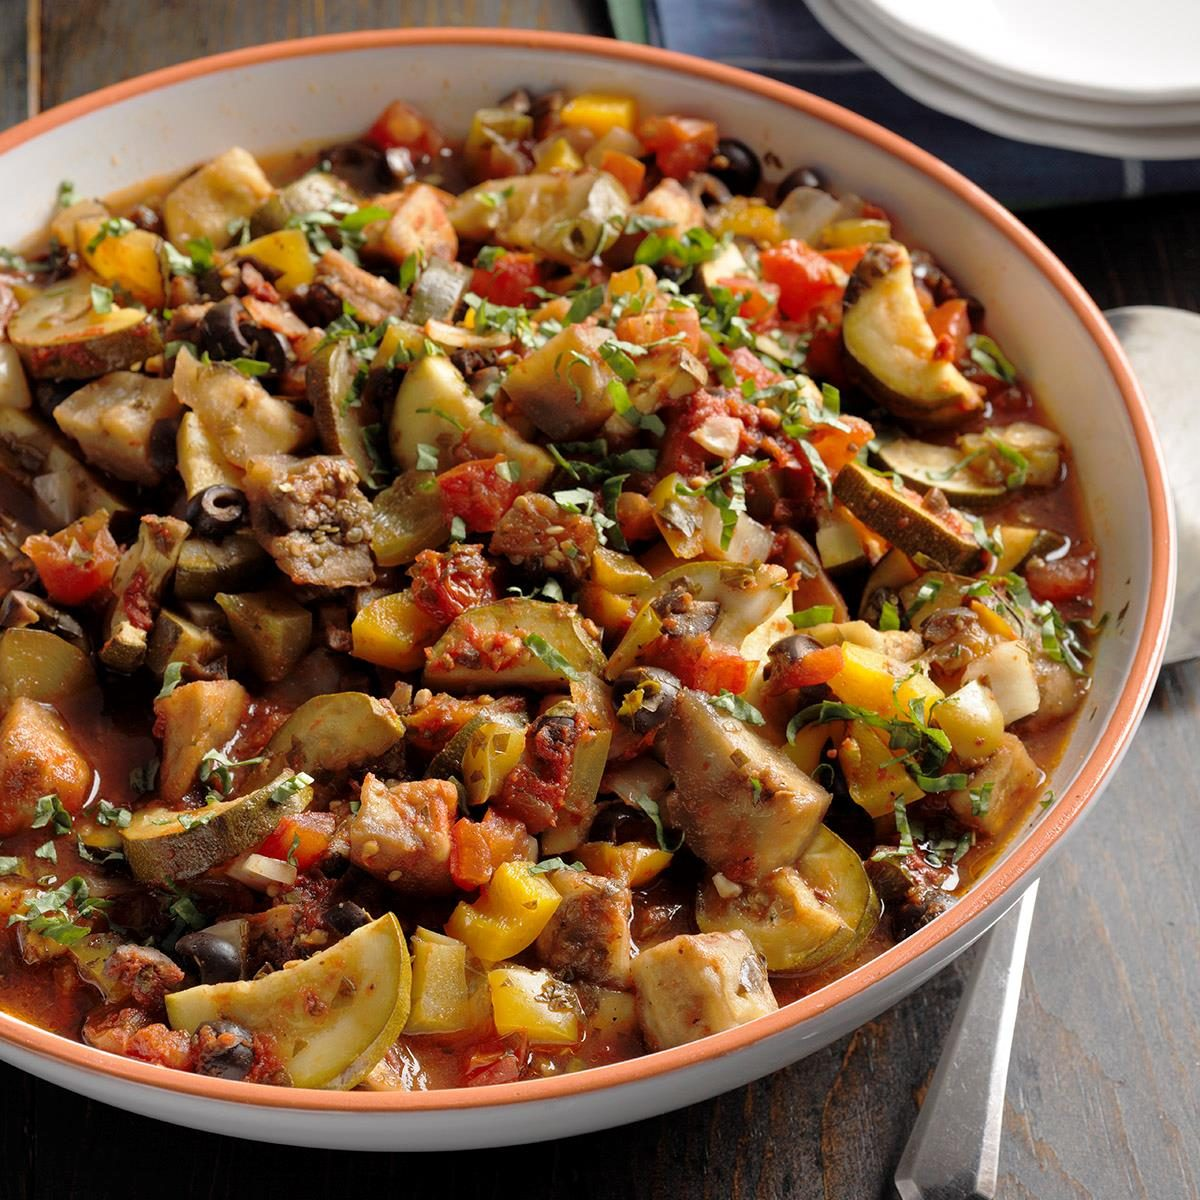 Day 12: Slow-Cooker Ratatouille